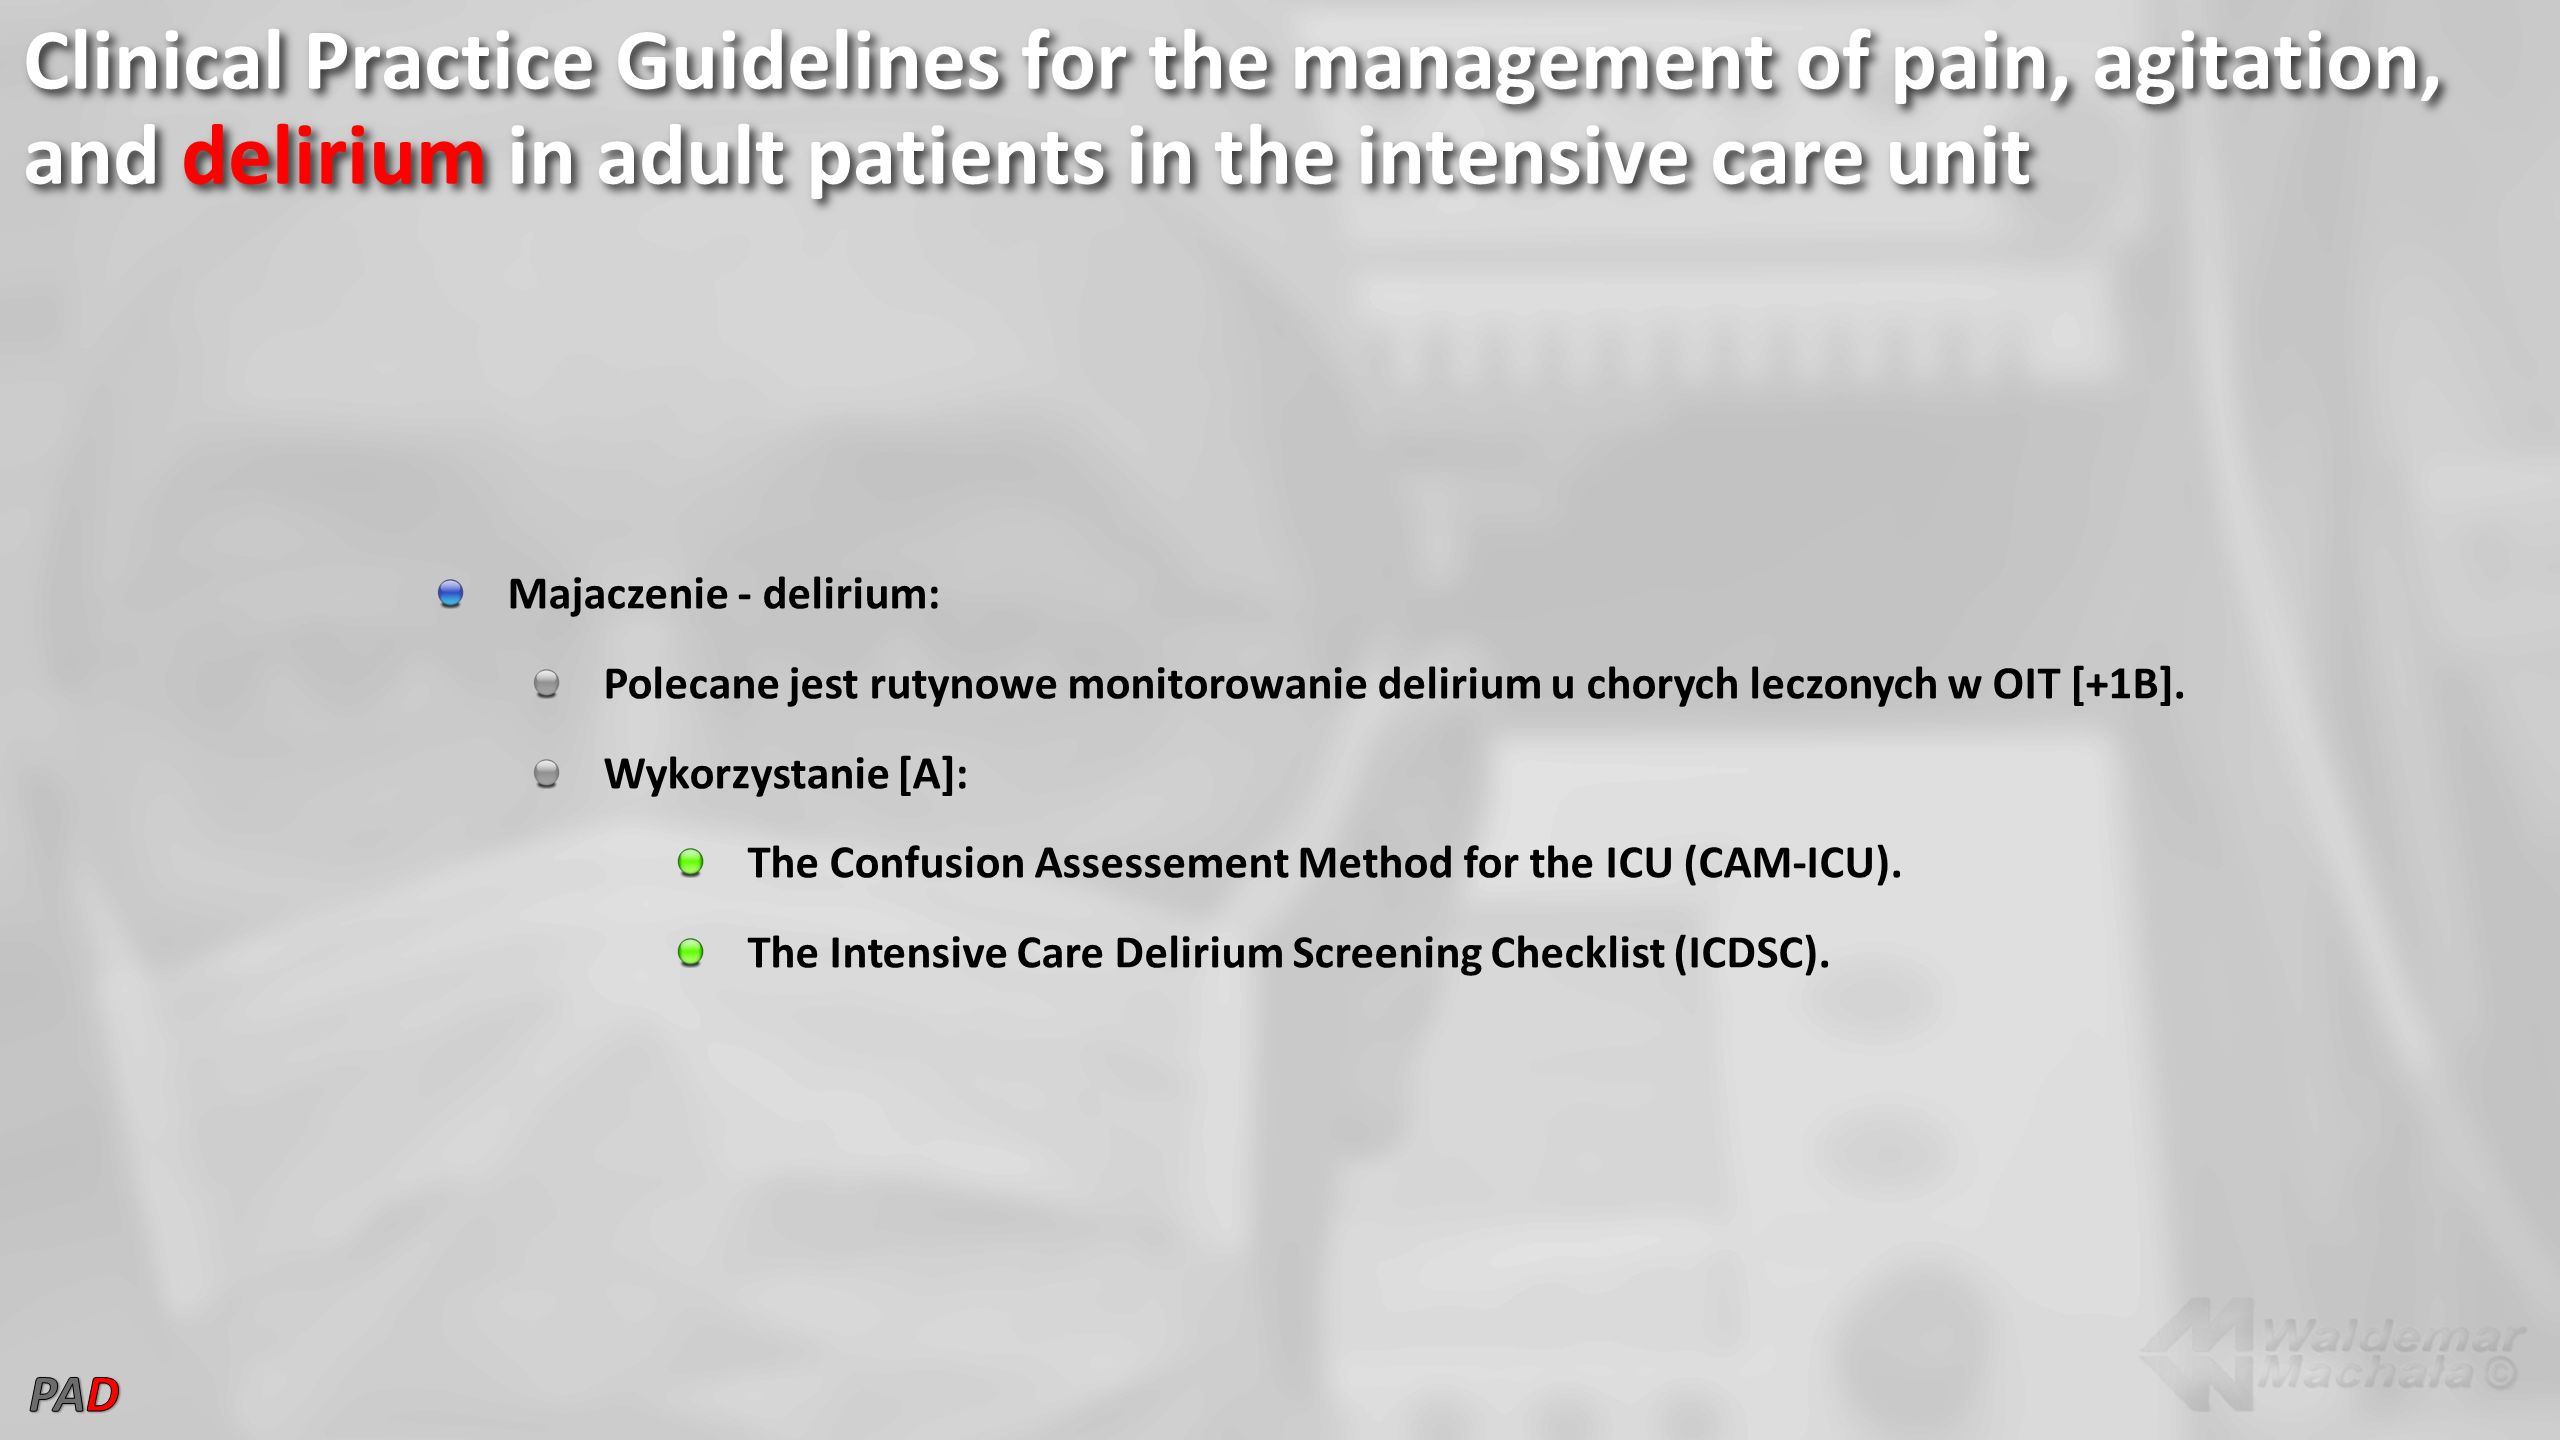 Clinical Practice Guidelines for the management of pain, agitation, and delirium in adult patients in the intensive care unit Majaczenie - delirium: Polecane jest rutynowe monitorowanie delirium u chorych leczonych w OIT [+1B].